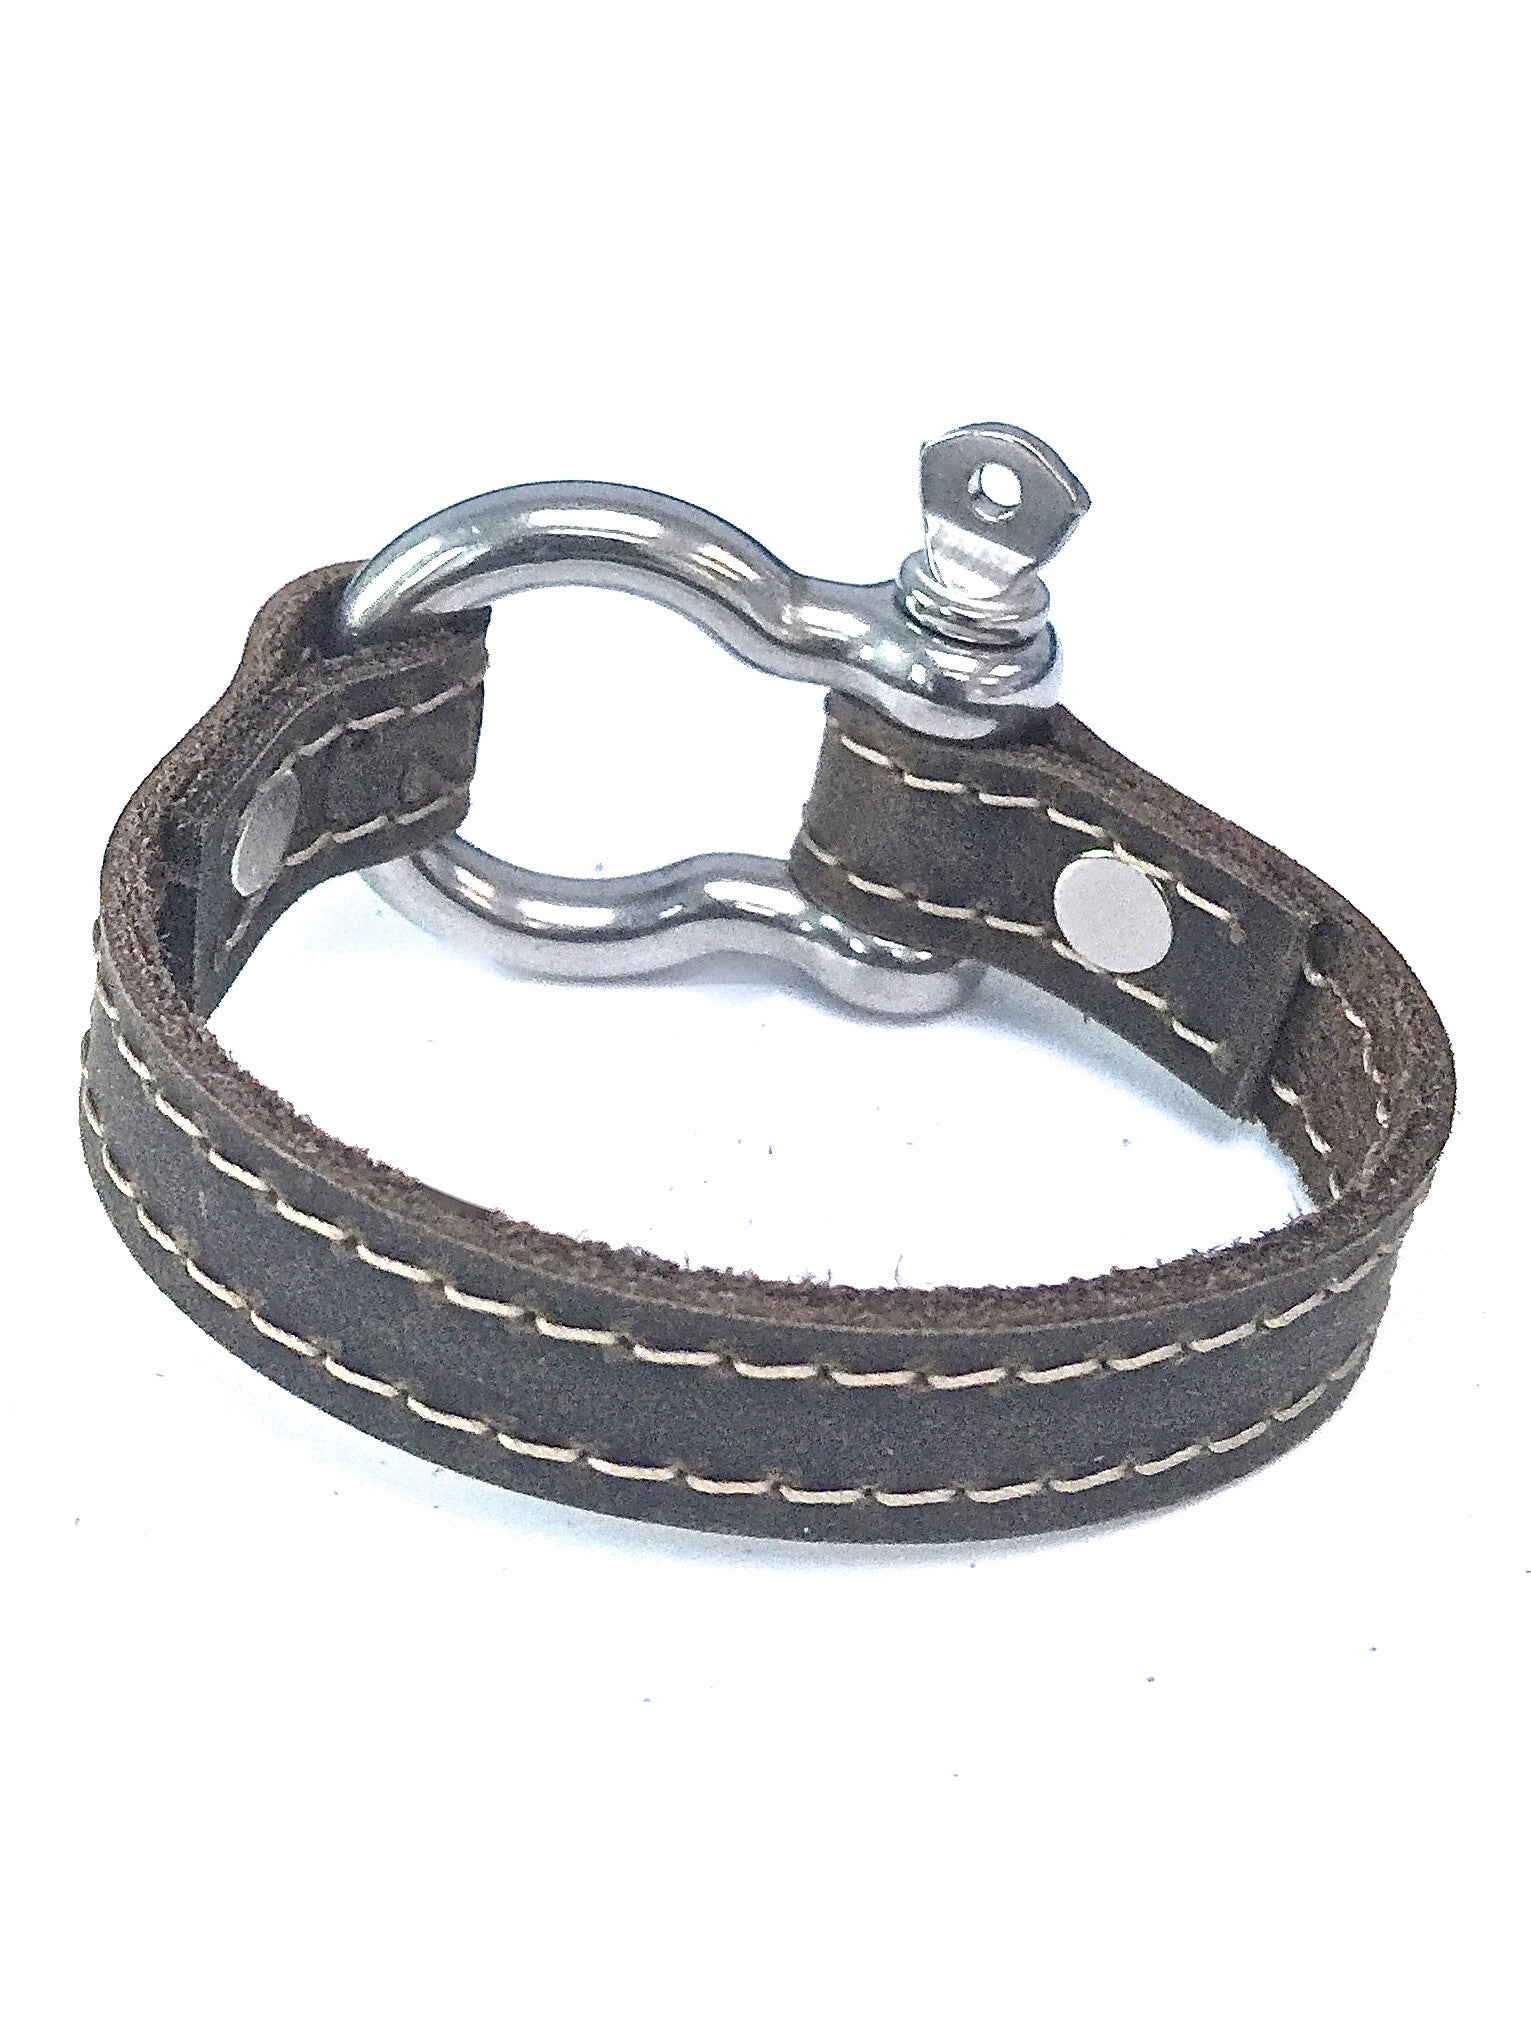 Signature leather bracelet with shackle distressed utility leather